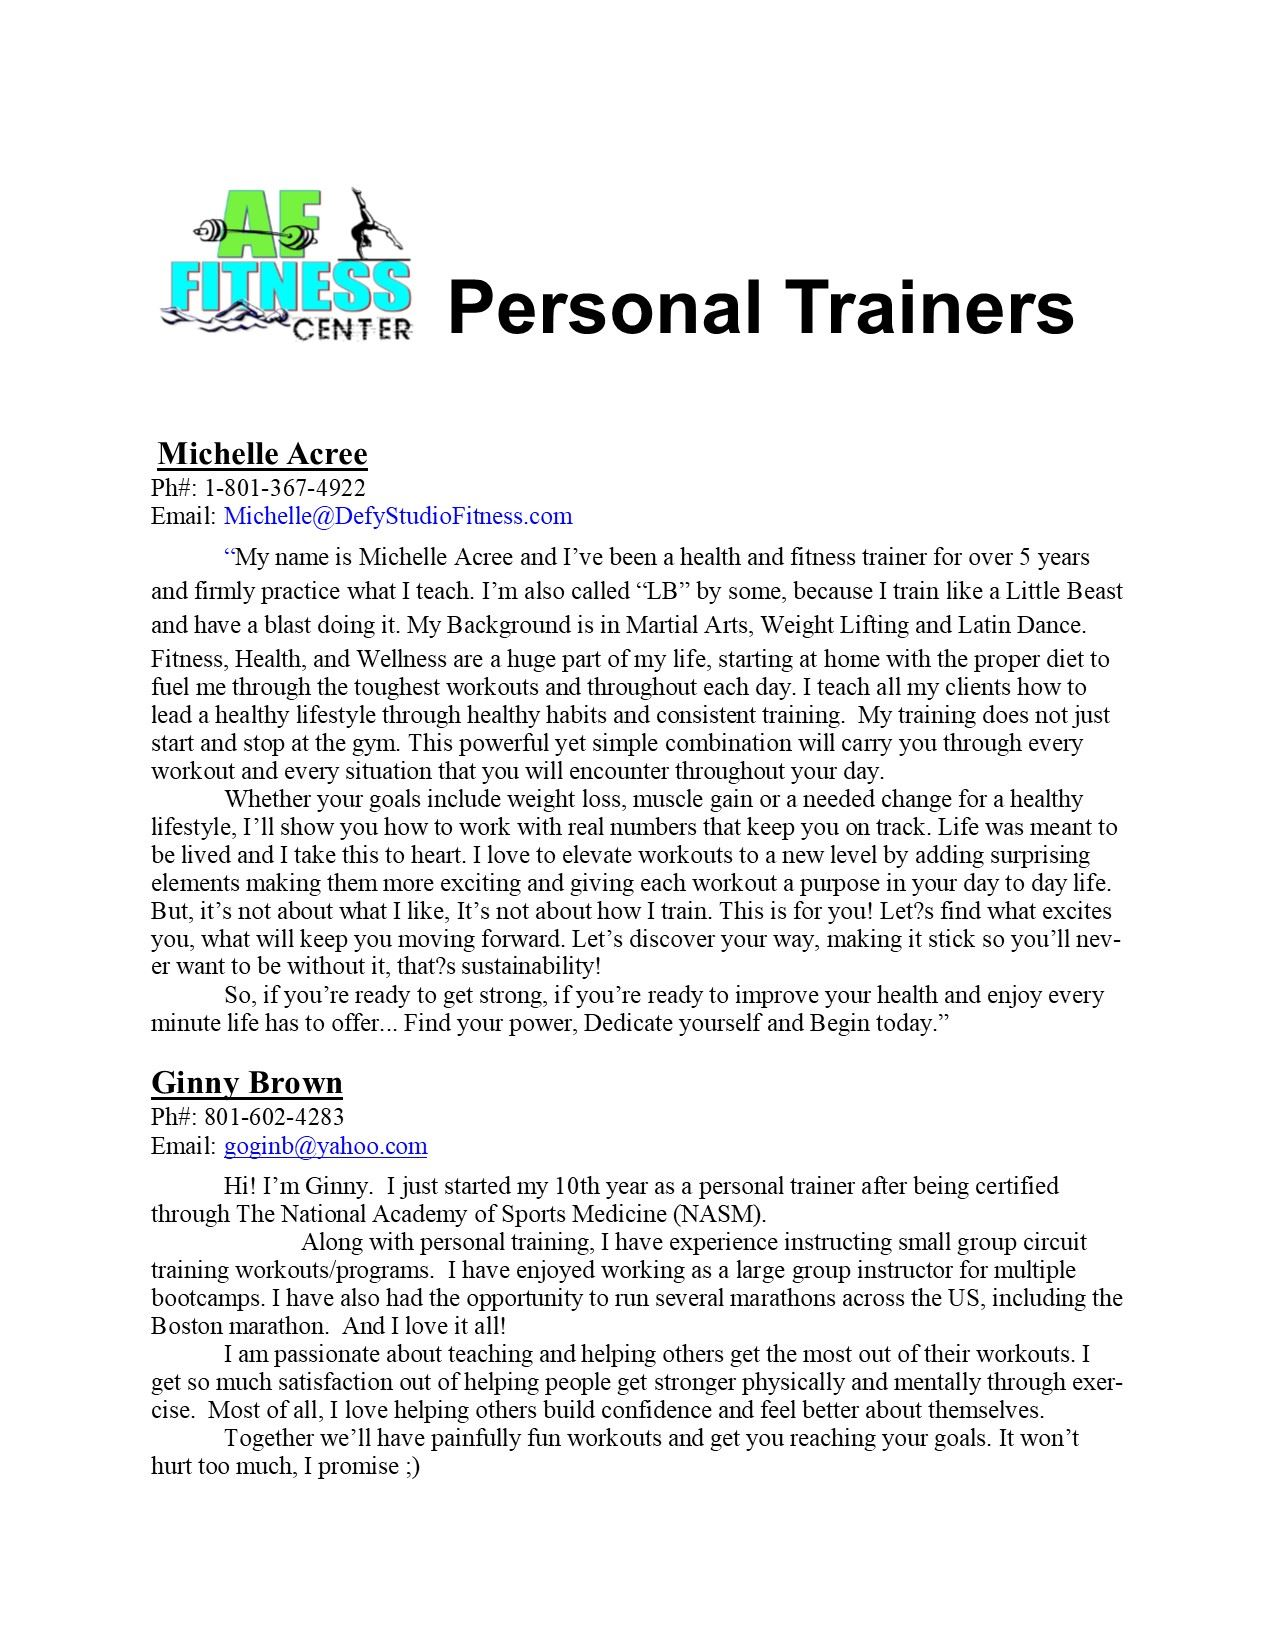 Personal Trainers Biography 1